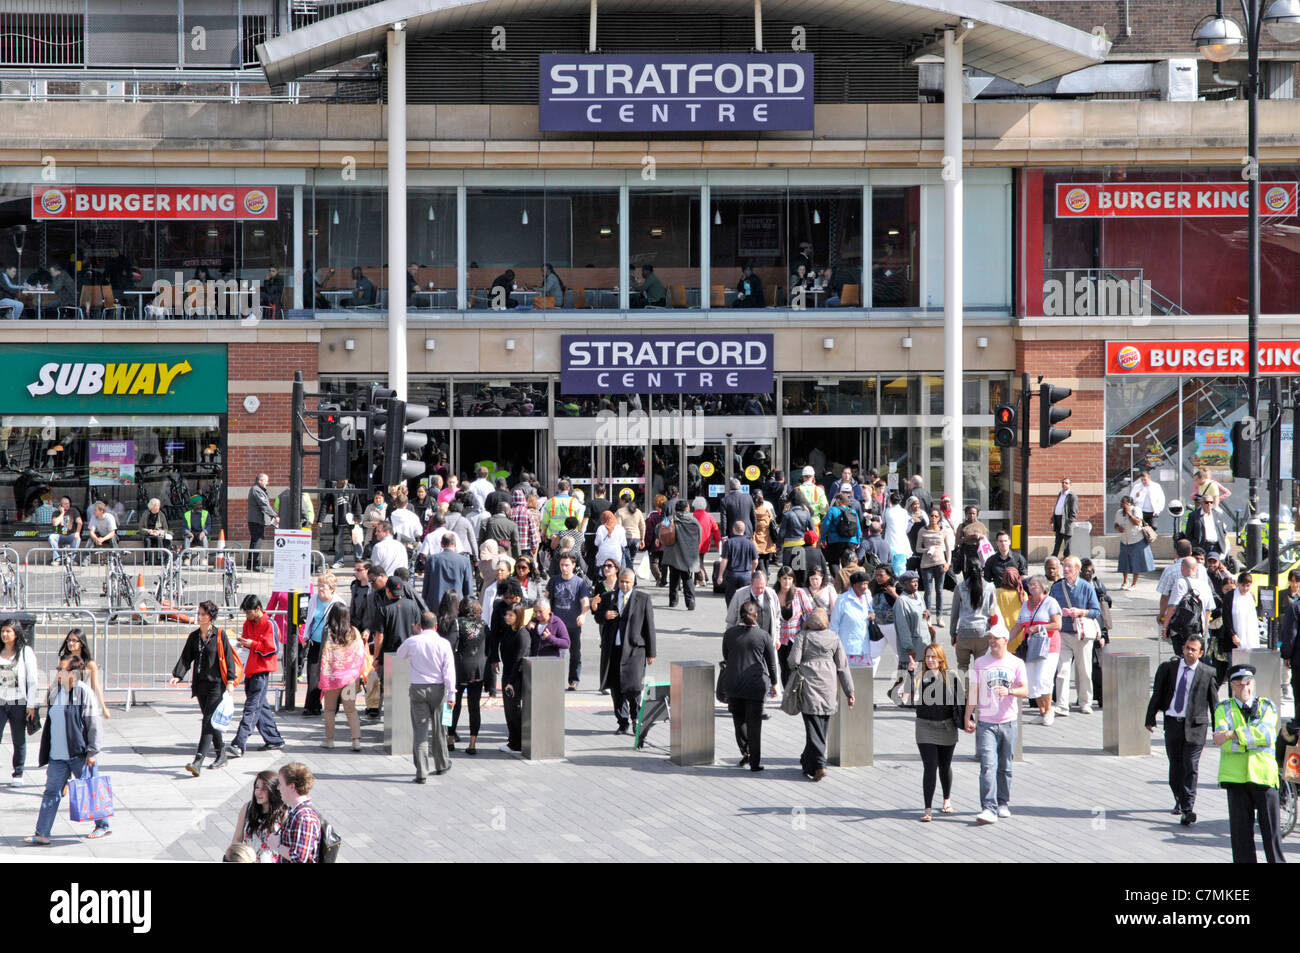 Entrance to the old Stratford Centre shopping mall (Not the Westfield complex) - Stock Image